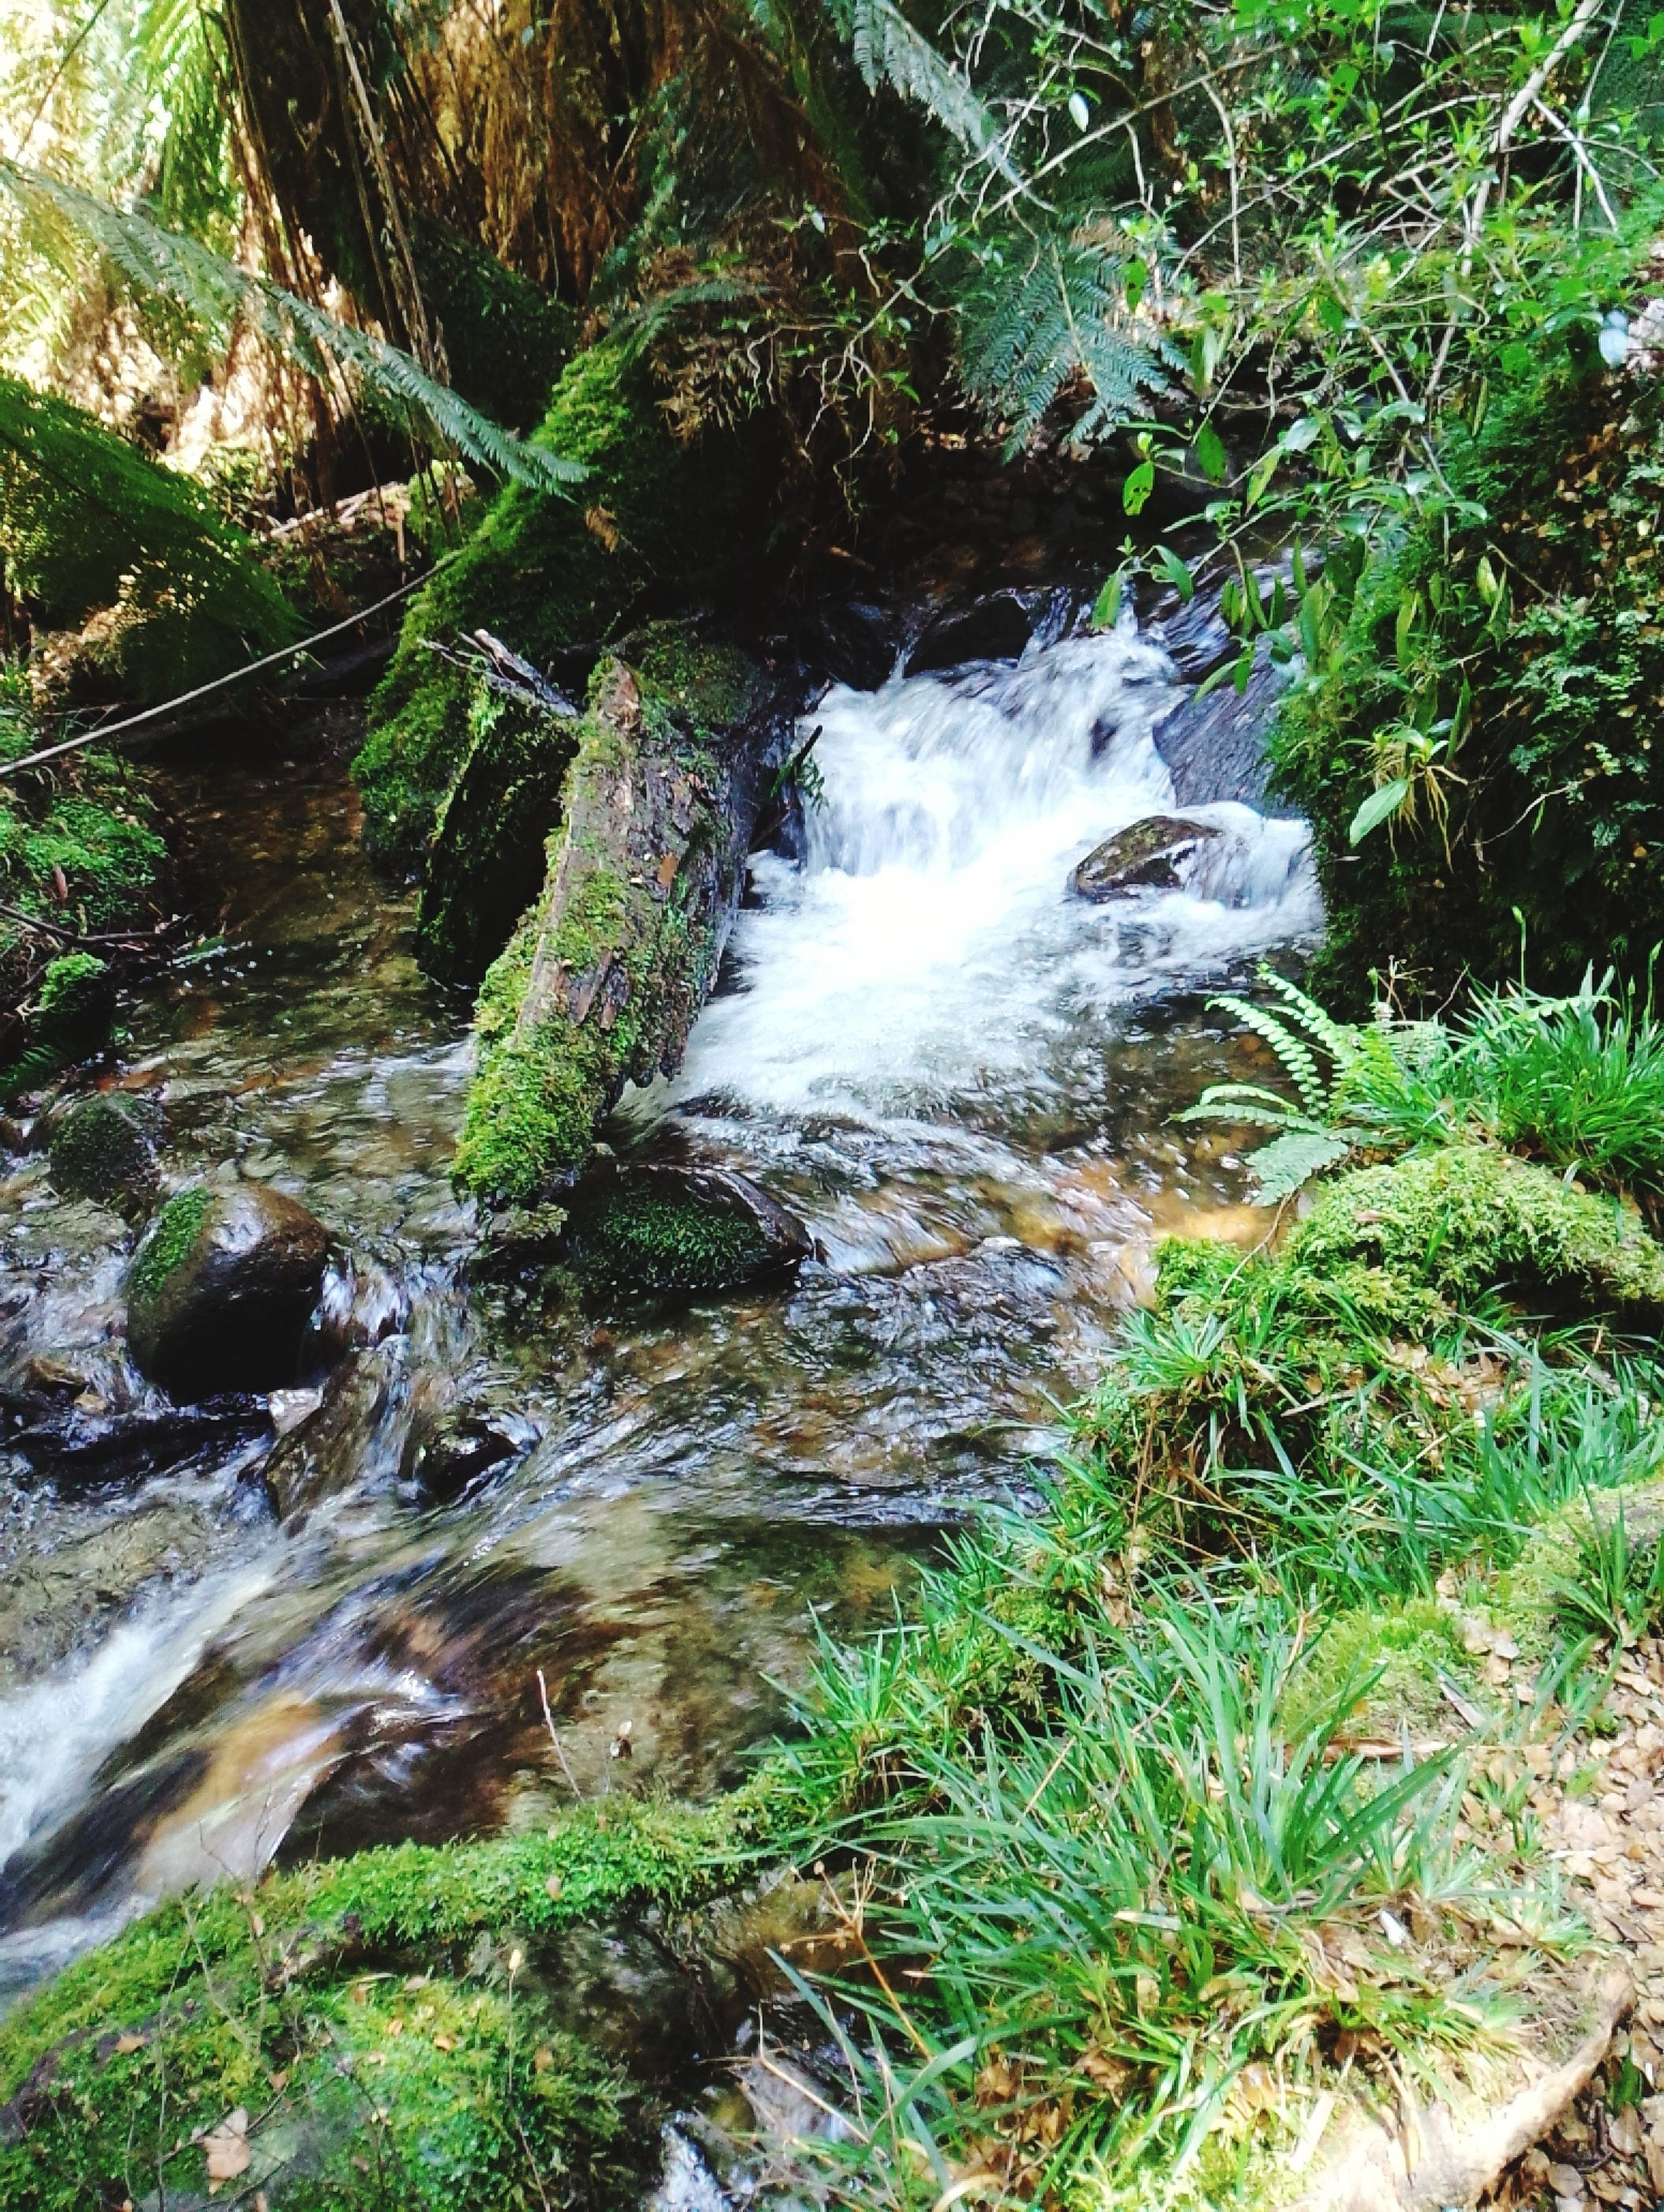 water, flowing water, motion, waterfall, rock - object, plant, flowing, nature, stream, beauty in nature, long exposure, forest, growth, high angle view, grass, moss, day, outdoors, scenics, tranquility